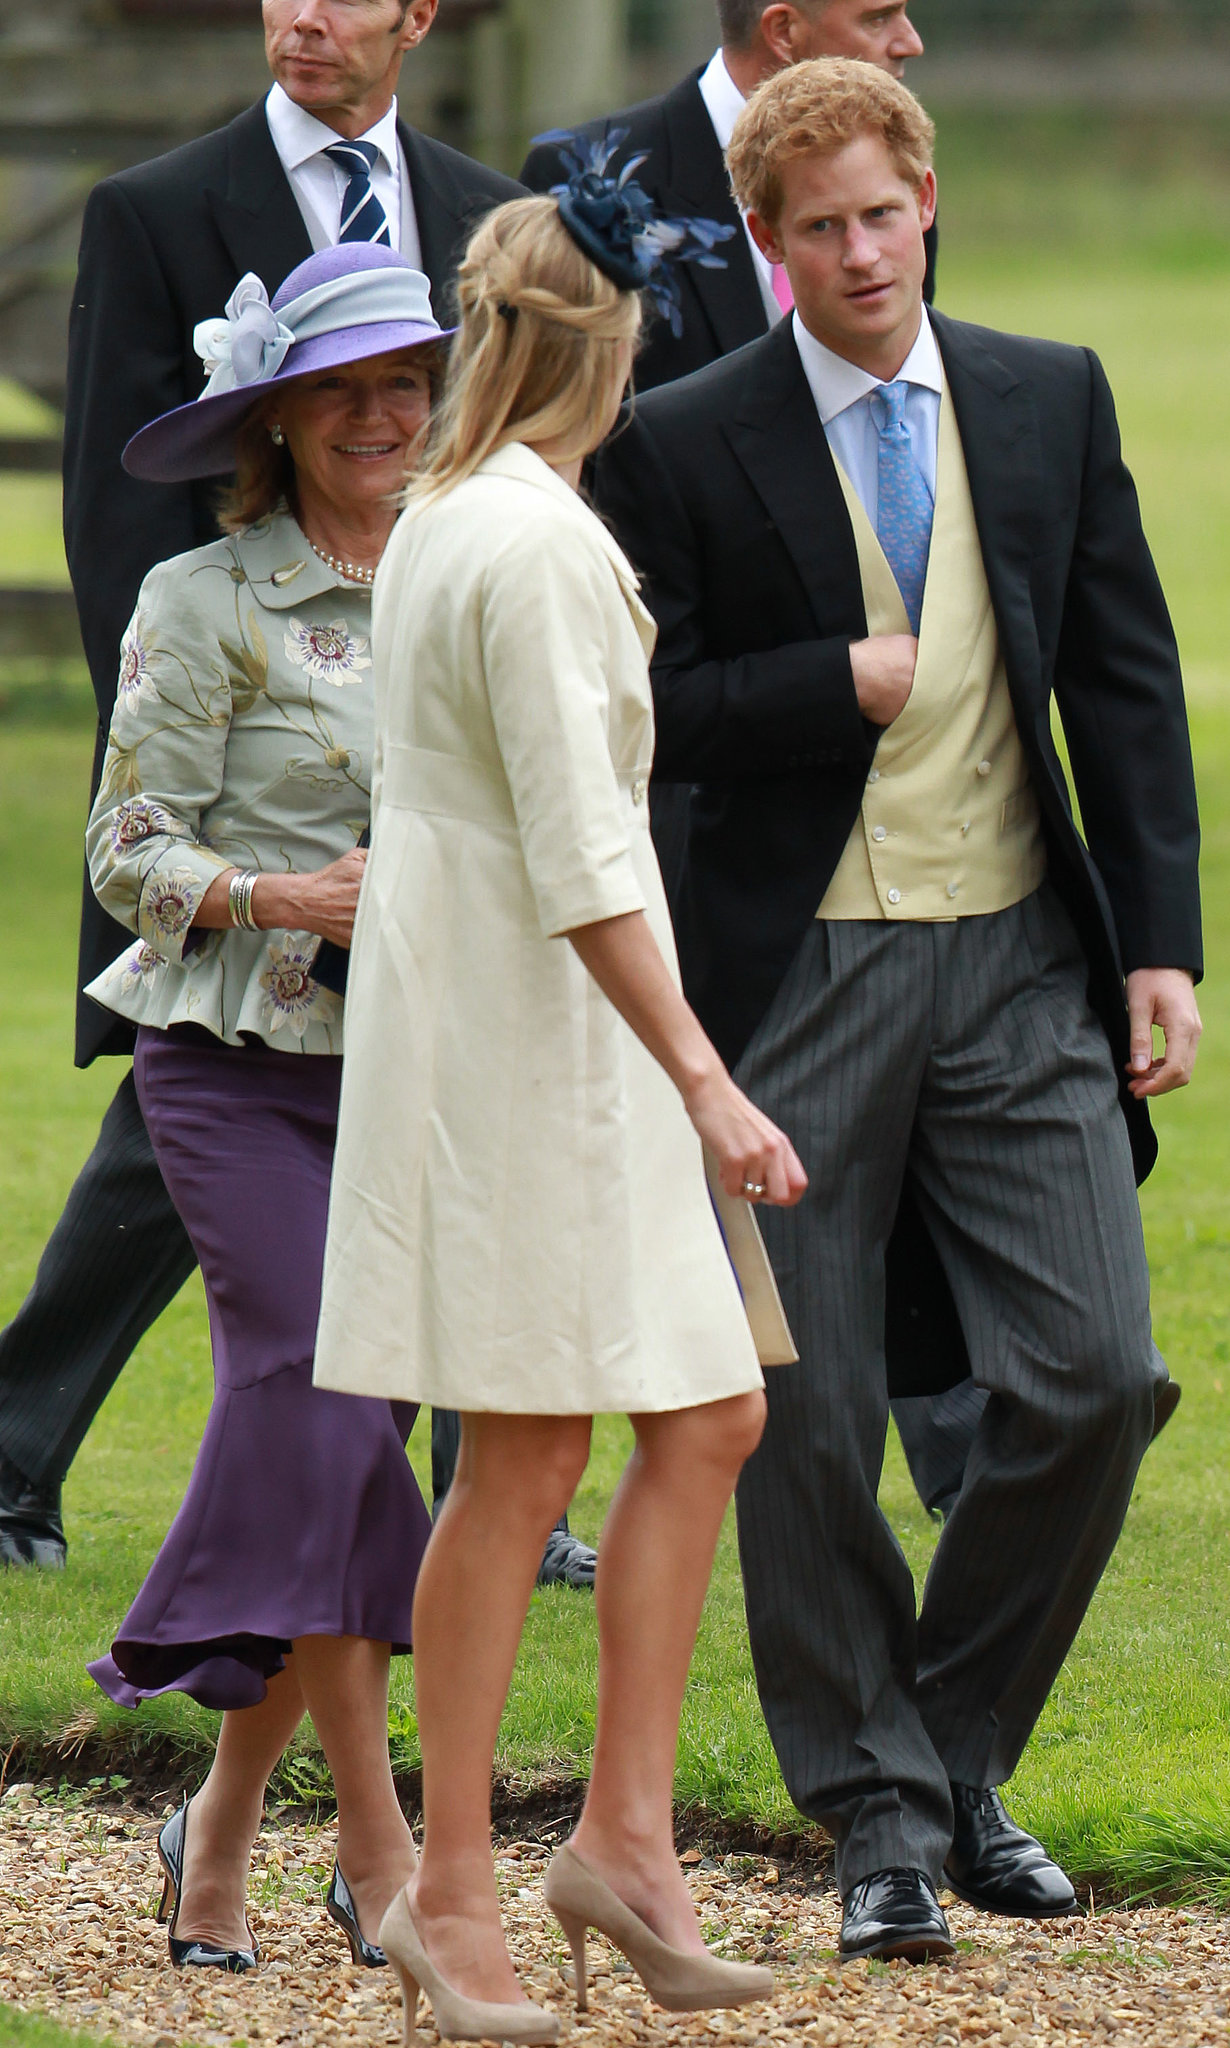 Prince Harry Wore A Suit For A Friend S Wedding In Gayton